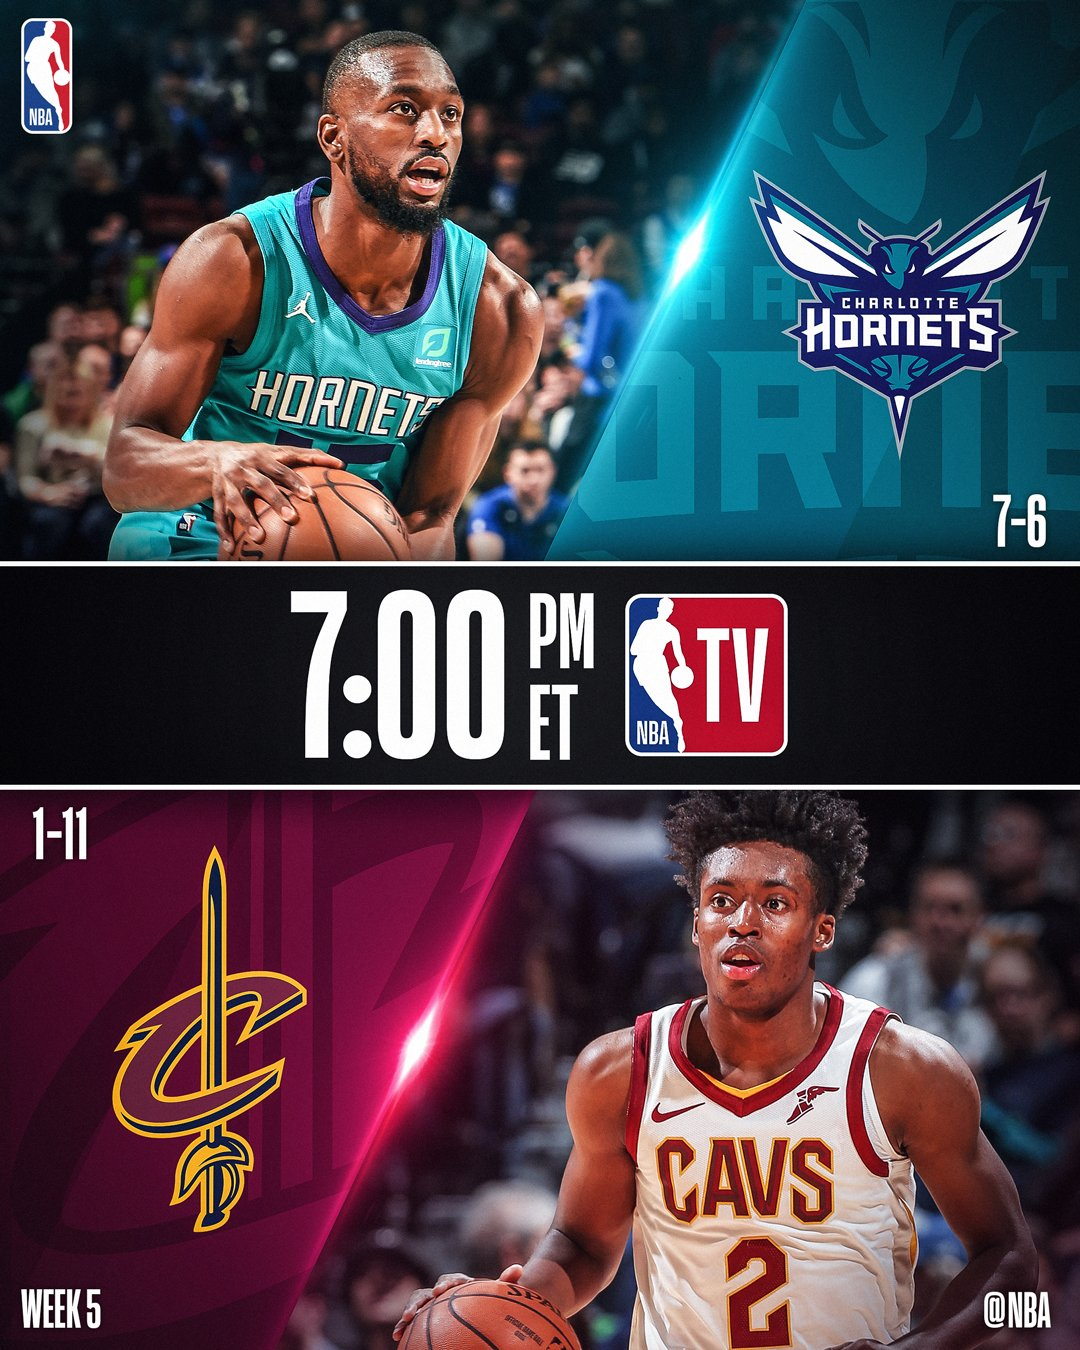 Tonight's @NBATV action features...  7:00pm/et: @hornets x @cavs  10:30pm/et: @ATLHawks x @warriors https://t.co/wKeitrfzW7